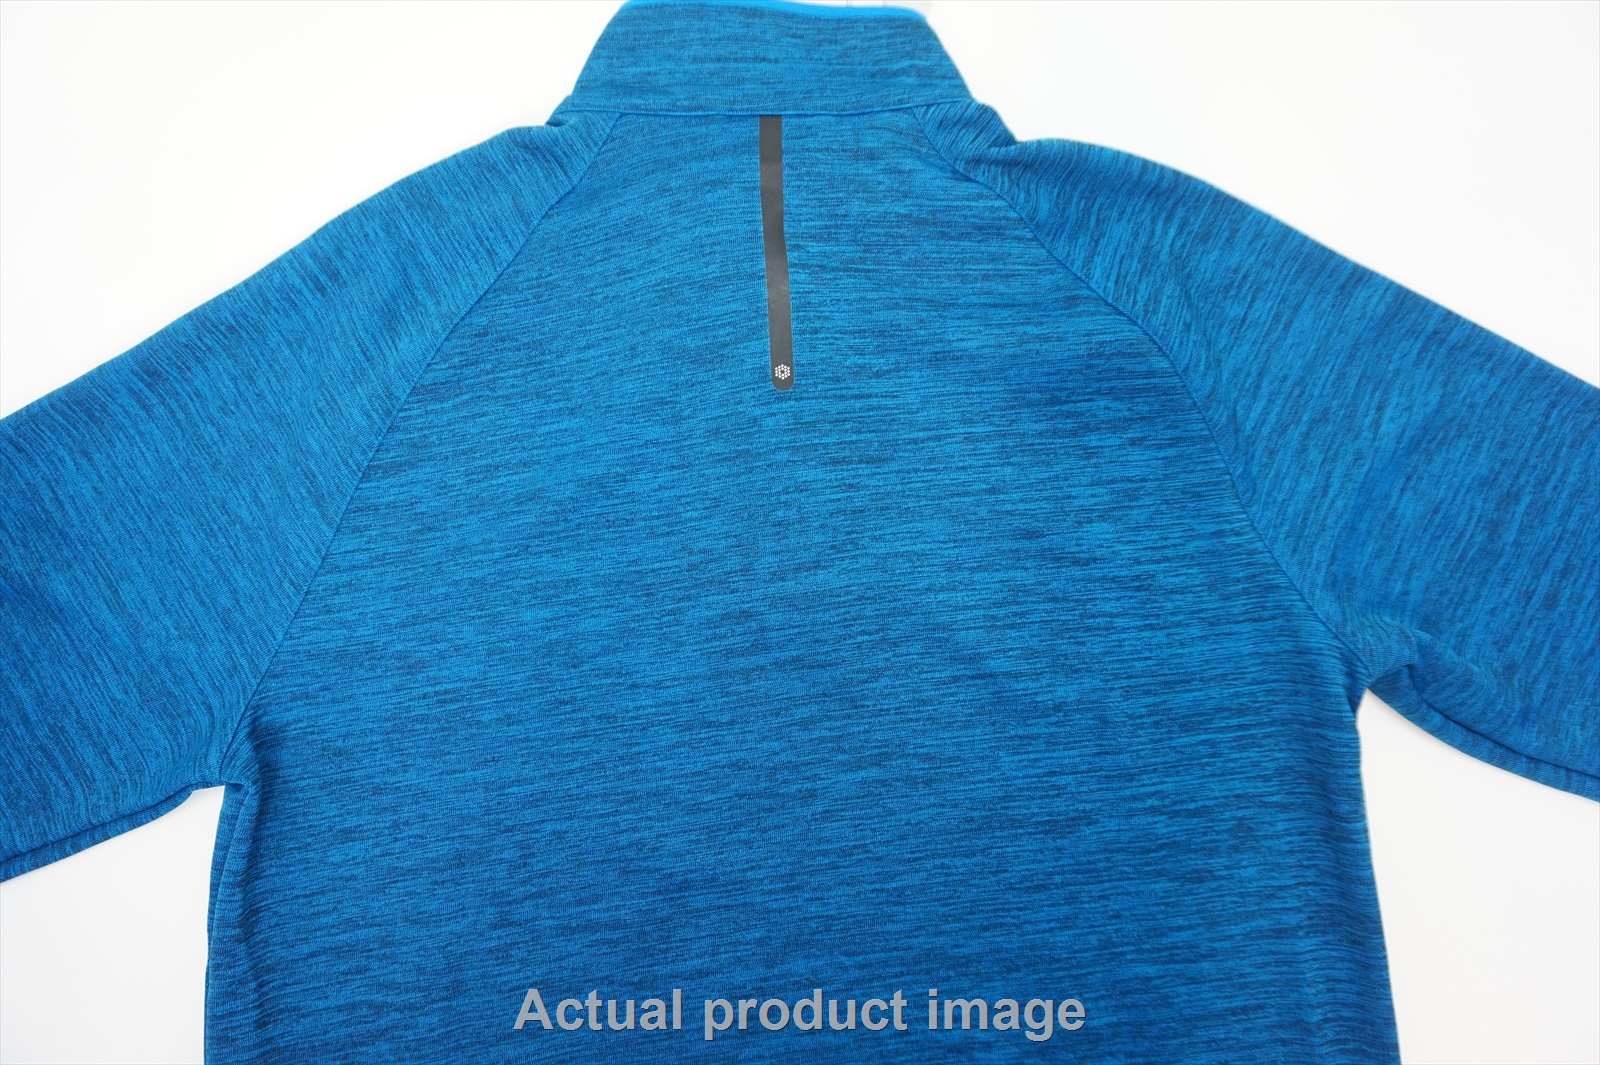 fd8eaf07 Details about New Puma Golf Bonded Pullover Mens Medium Electric Blue  Lemonade 1/4 Zip 240b